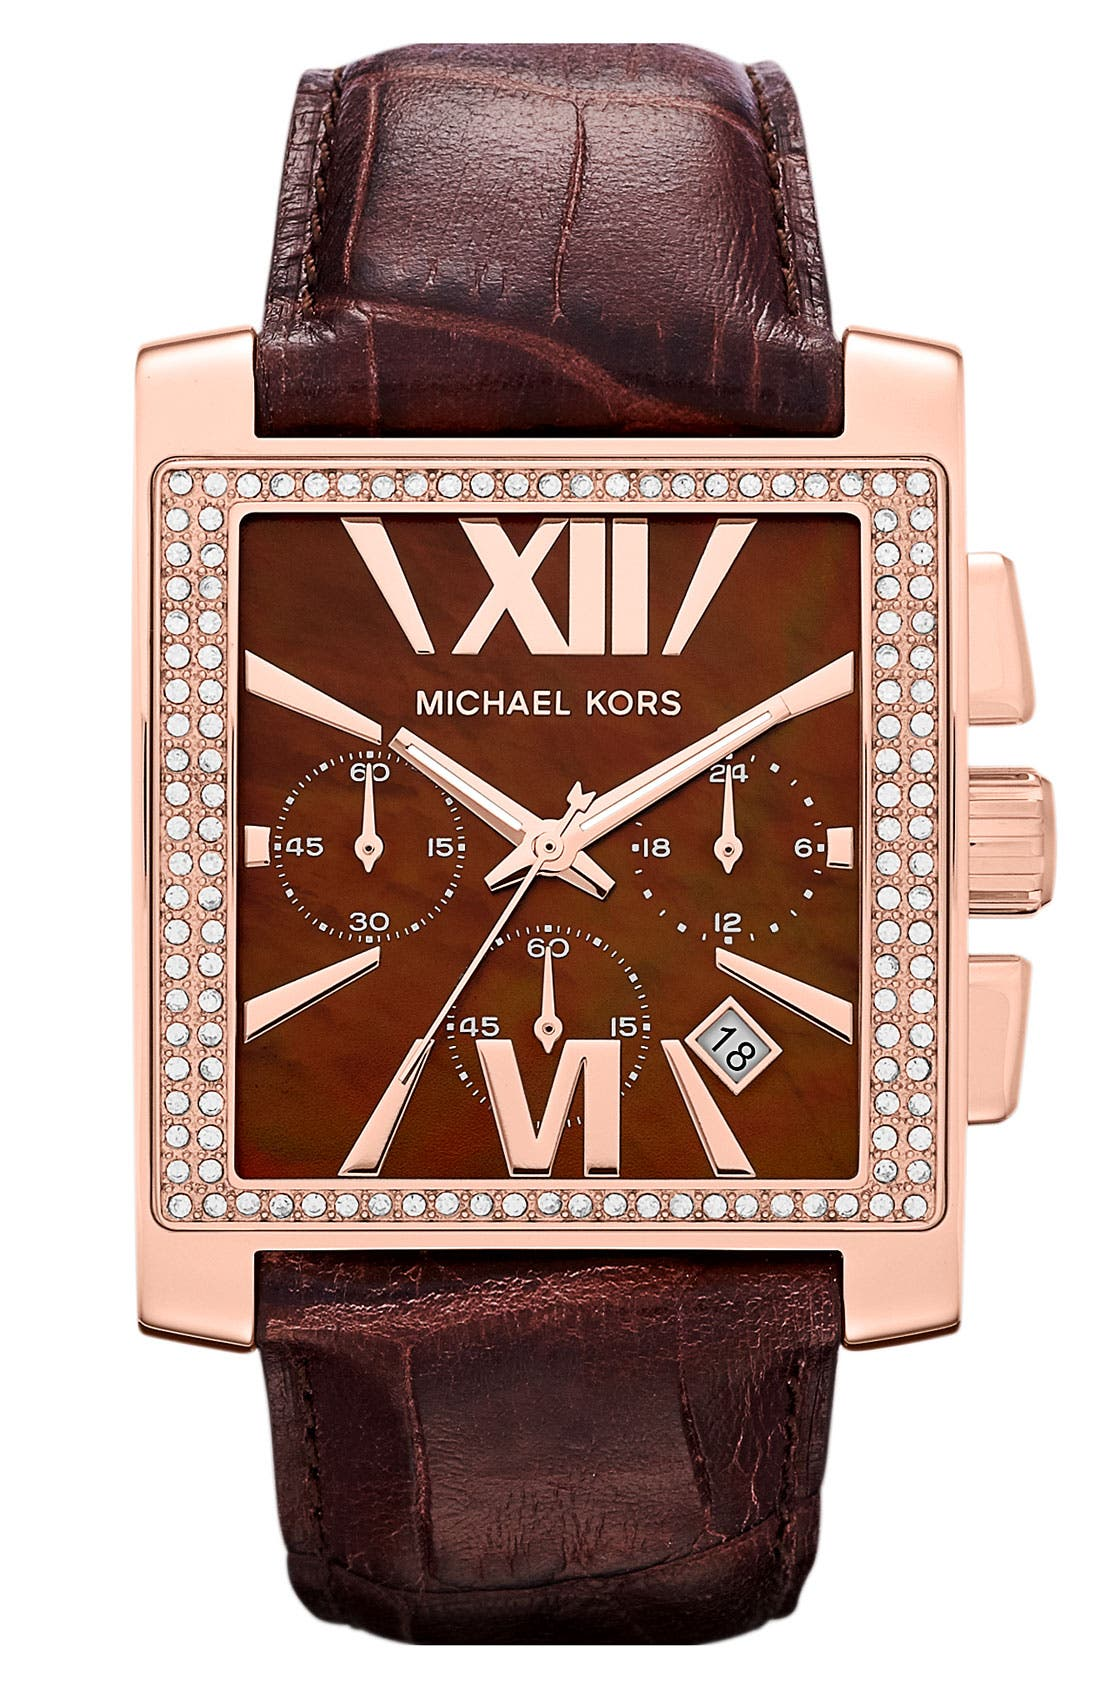 Main Image - Michael Kors 'Gia' Square Chronograph Leather Strap Watch, 37mm